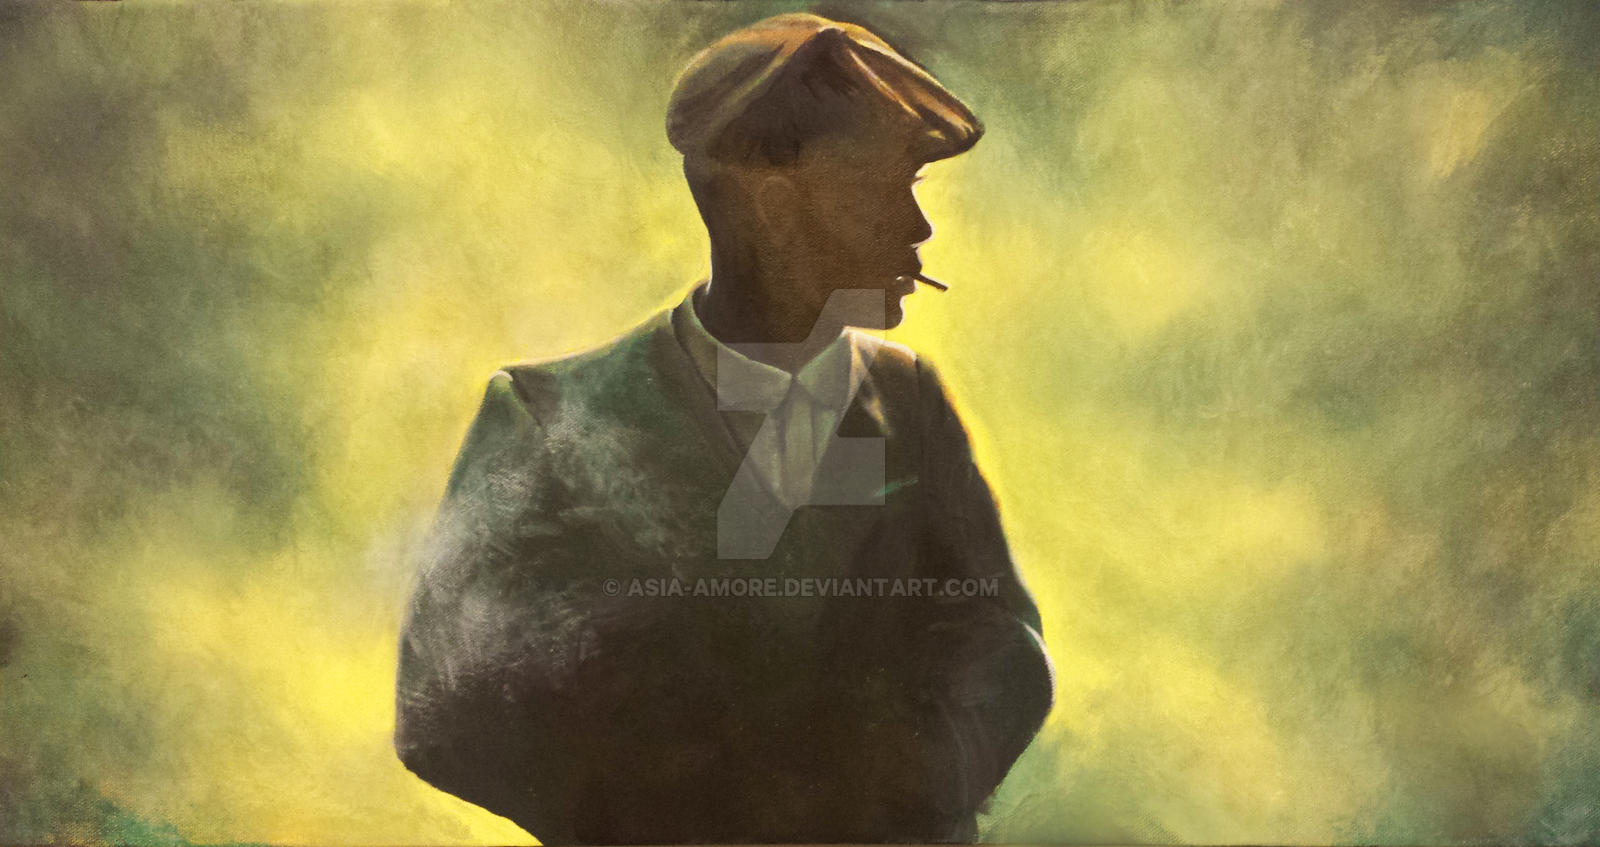 pirates wallpapers for desktop